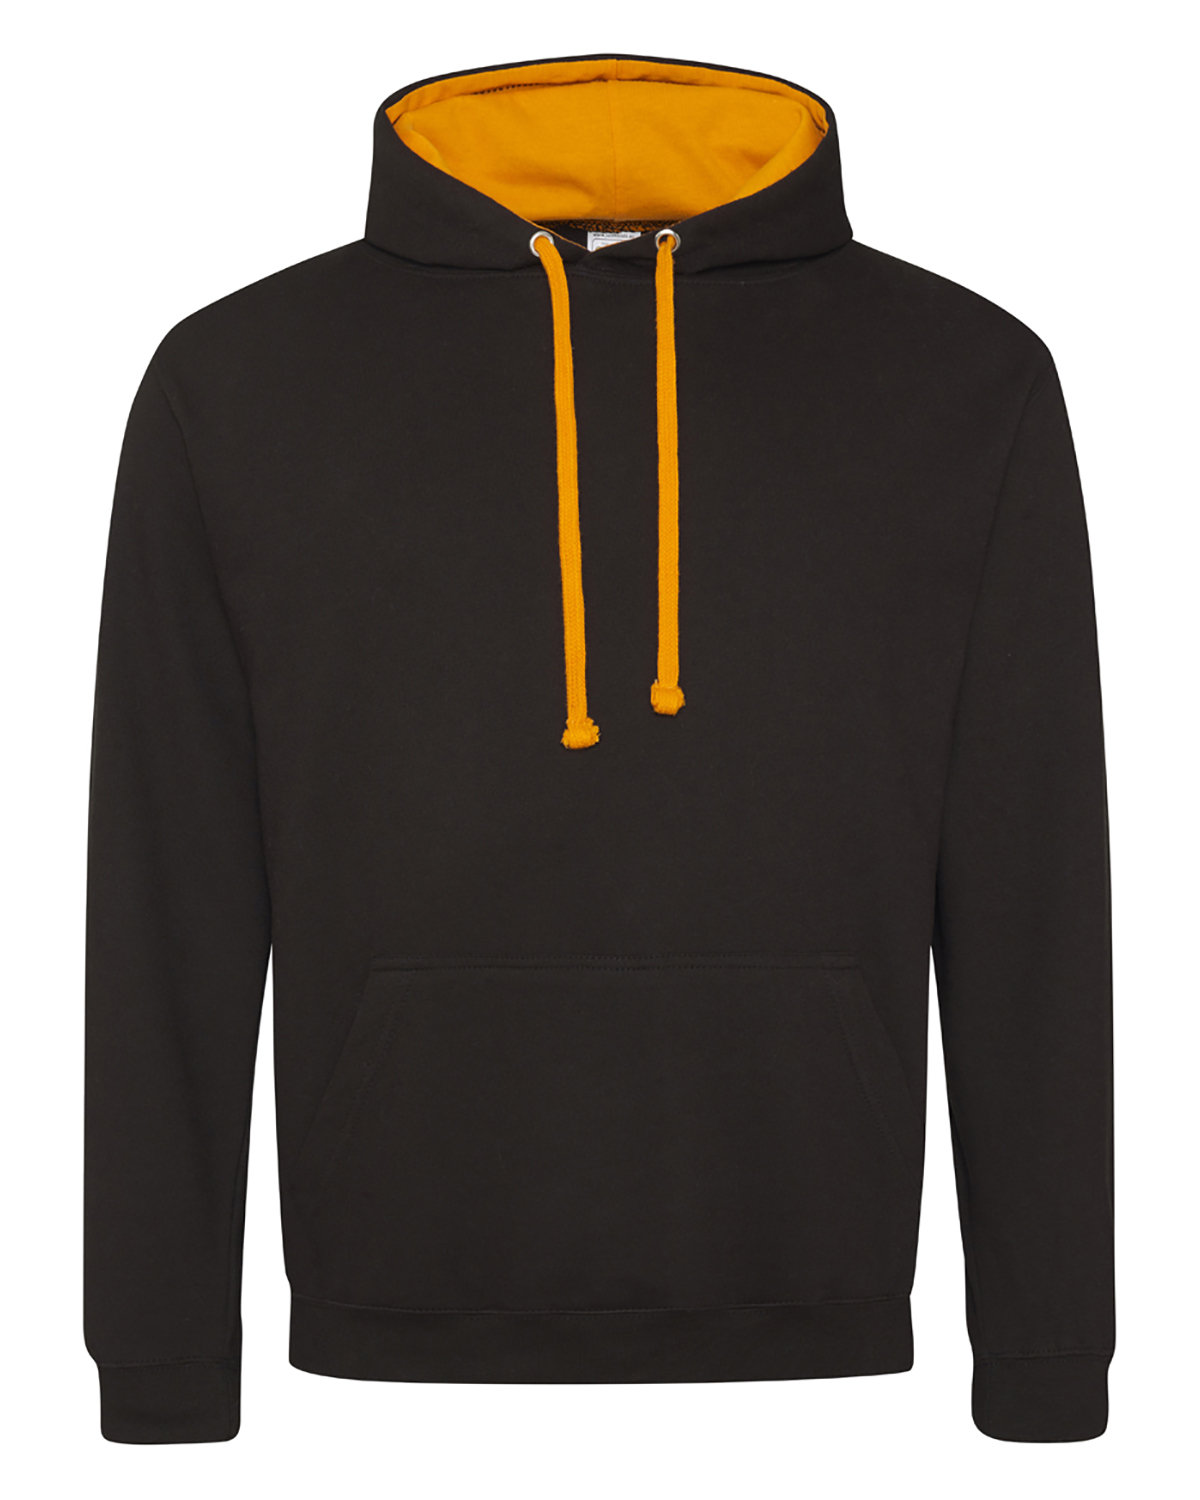 Just Hoods By AWDis Adult 80/20 Midweight Varsity Contrast Hooded Sweatshirt JT BLK/ ORN CRSH